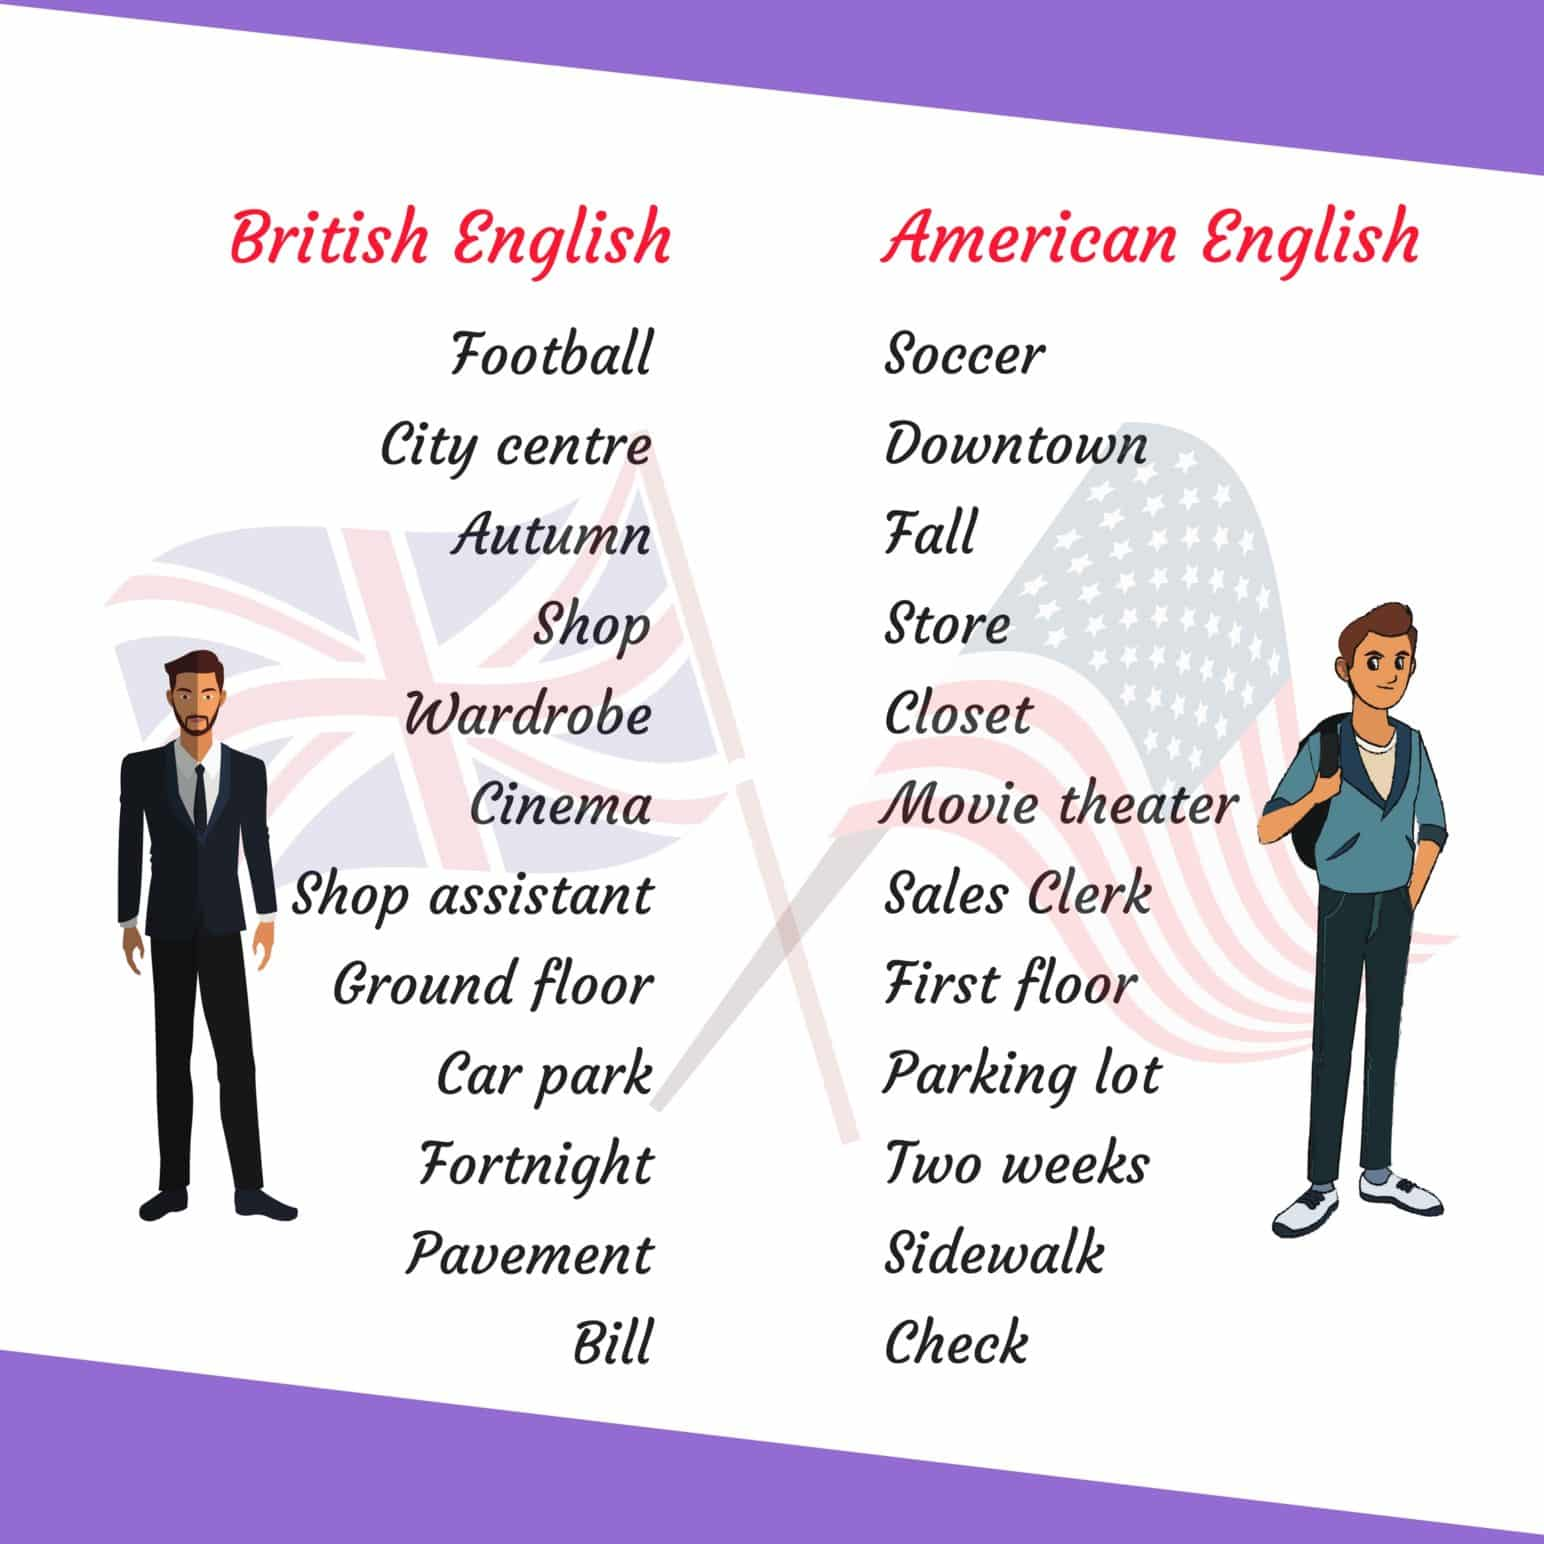 British vs American English: What are the Differences? Popular Words 2